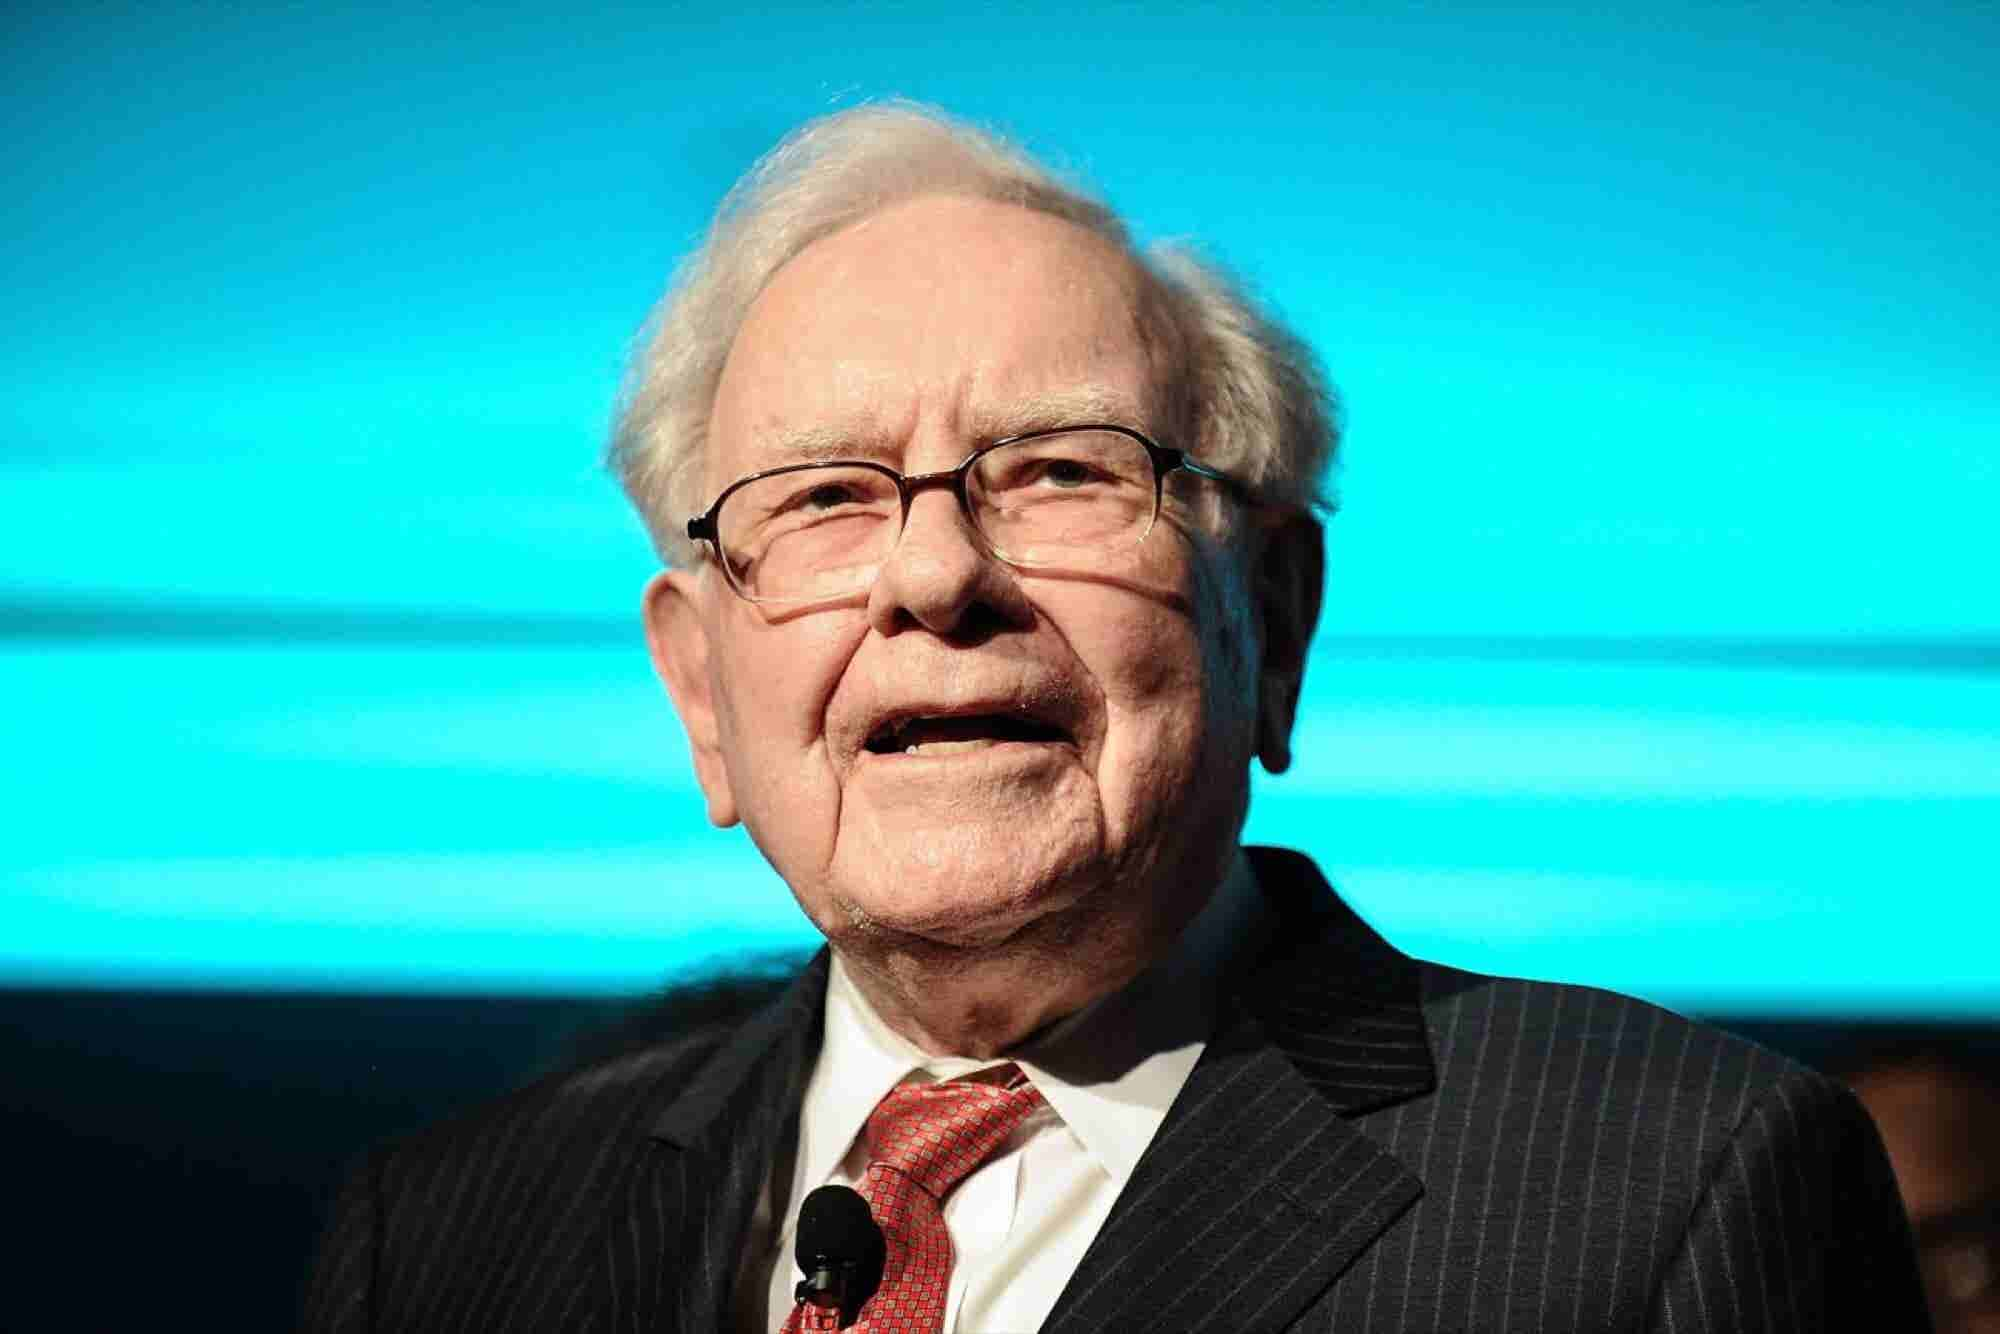 Apple Stock Soars to New Heights Thanks to Warren Buffett's $44 Billion Vote of Confidence